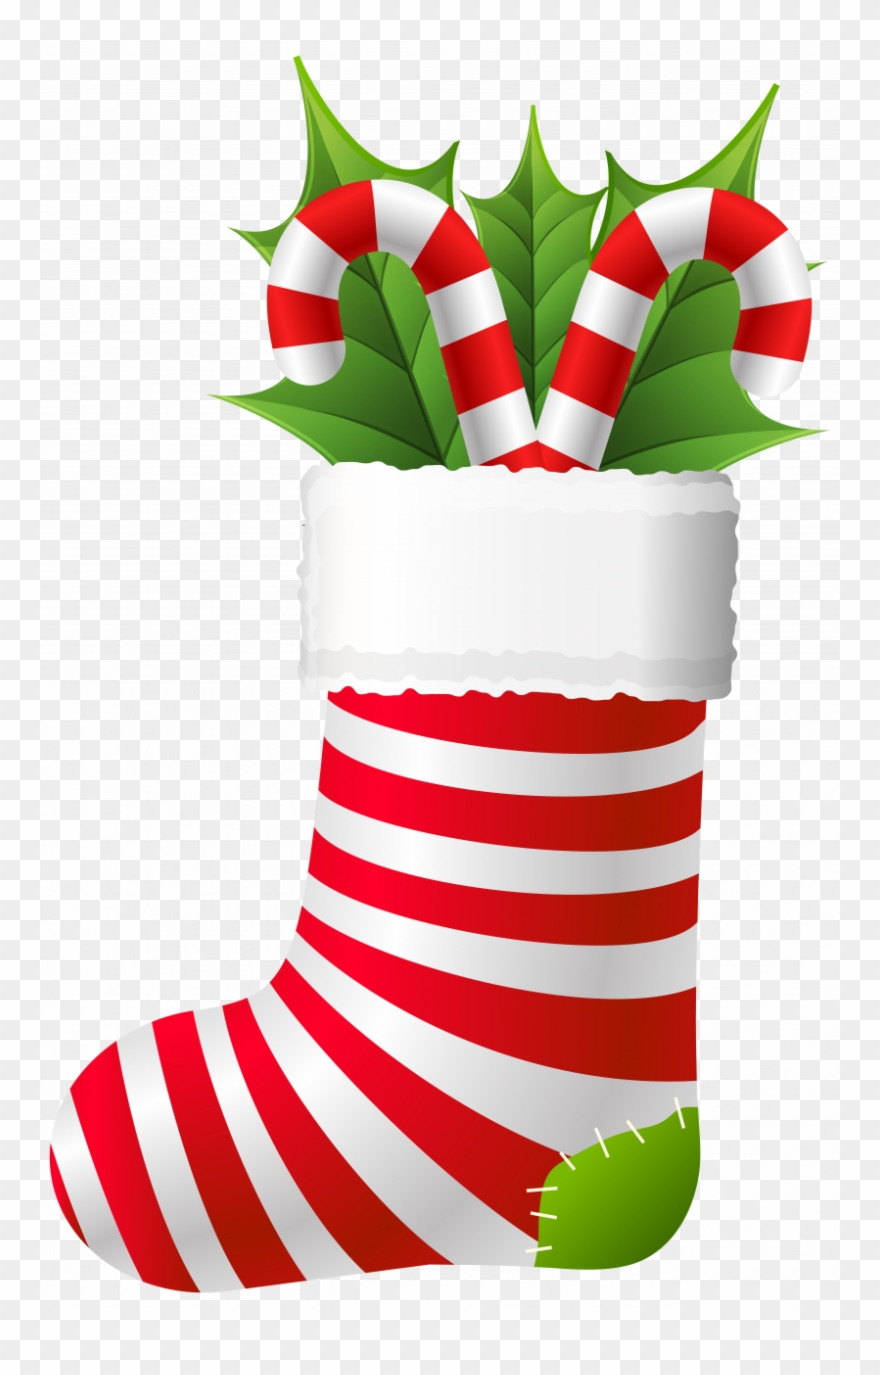 Library Christmas Stocking Clipart Images.